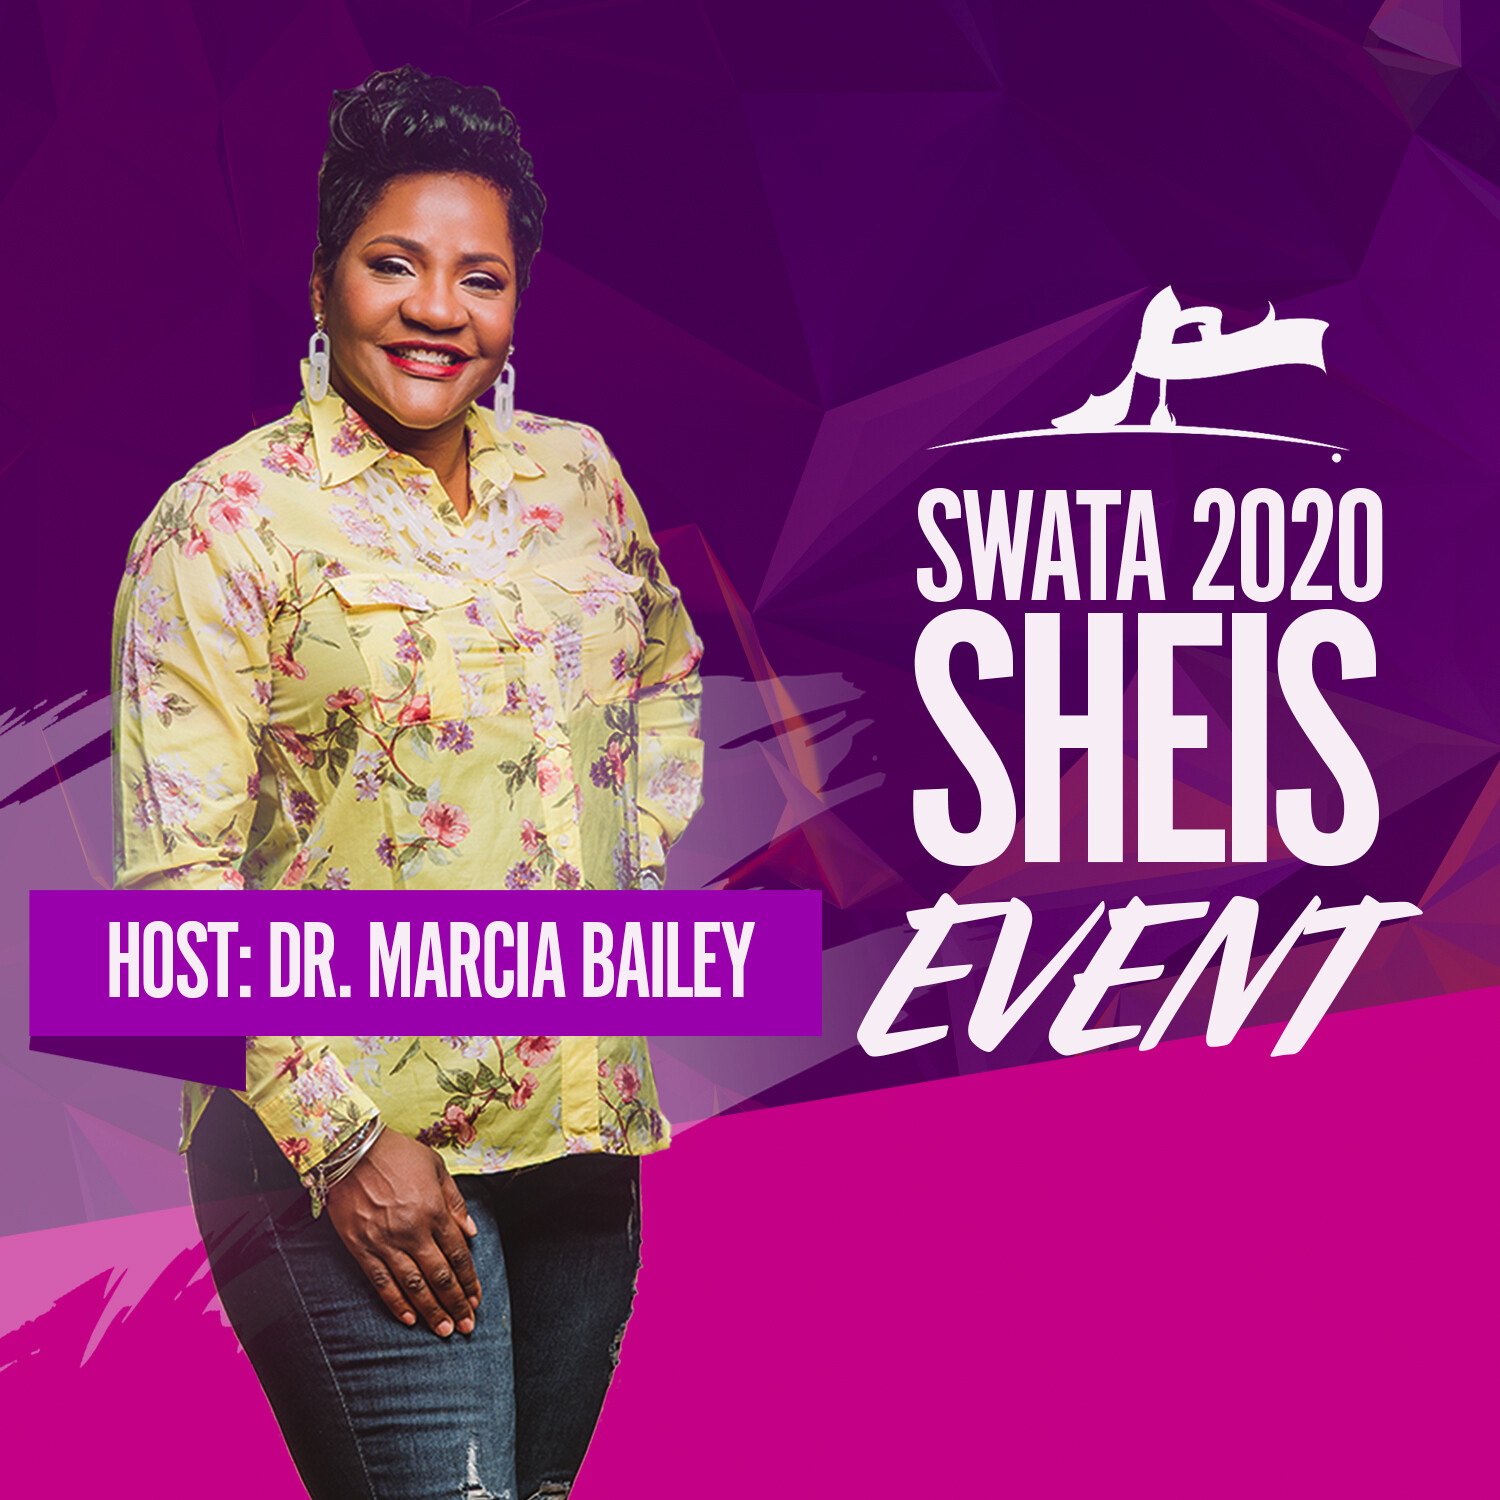 She Is   Dr. Marcia Bailey